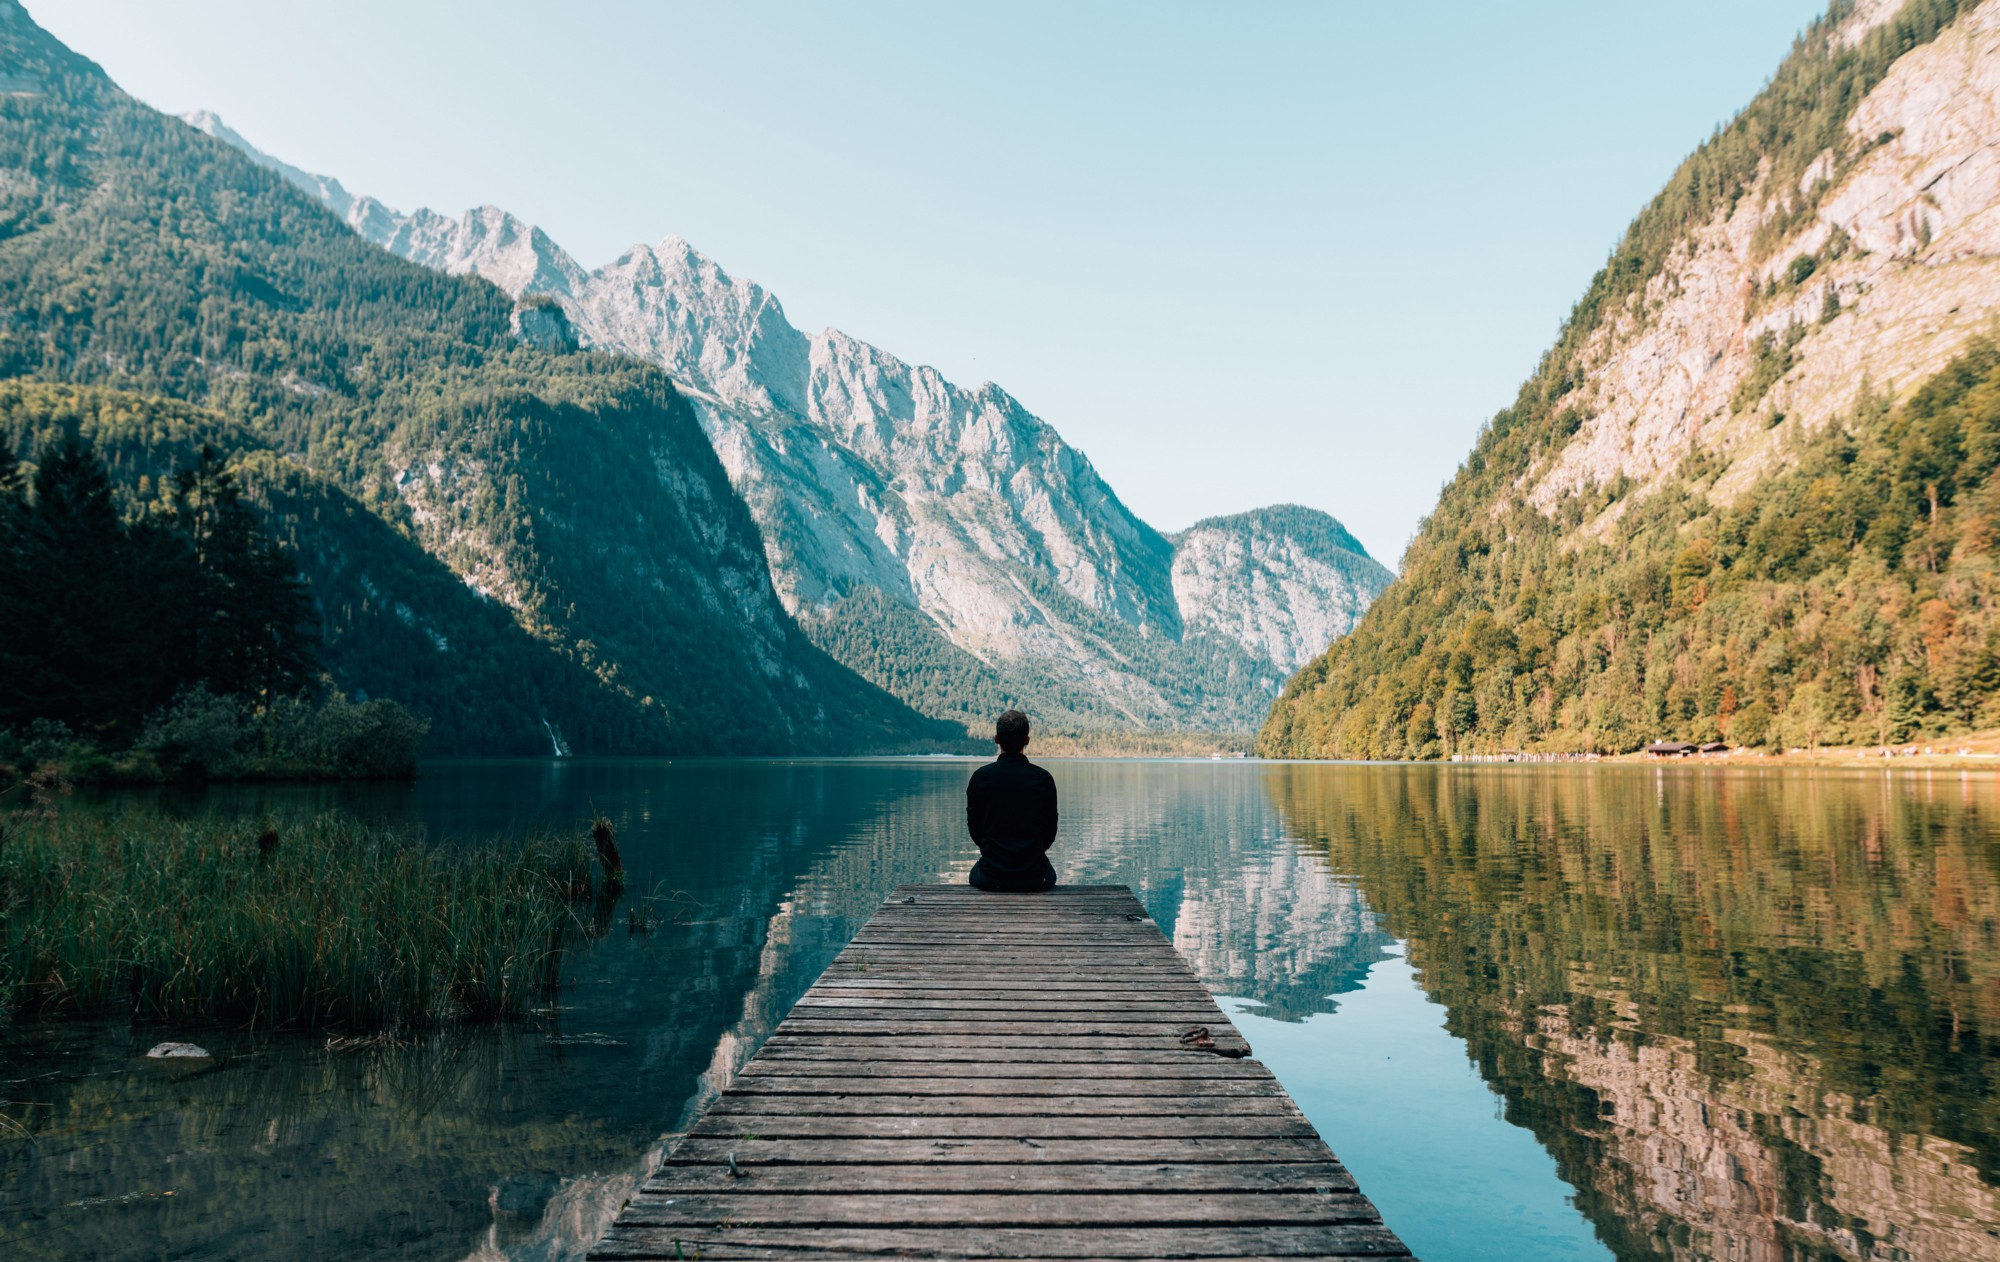 Man meditating surrounded by mountains and clear skies.